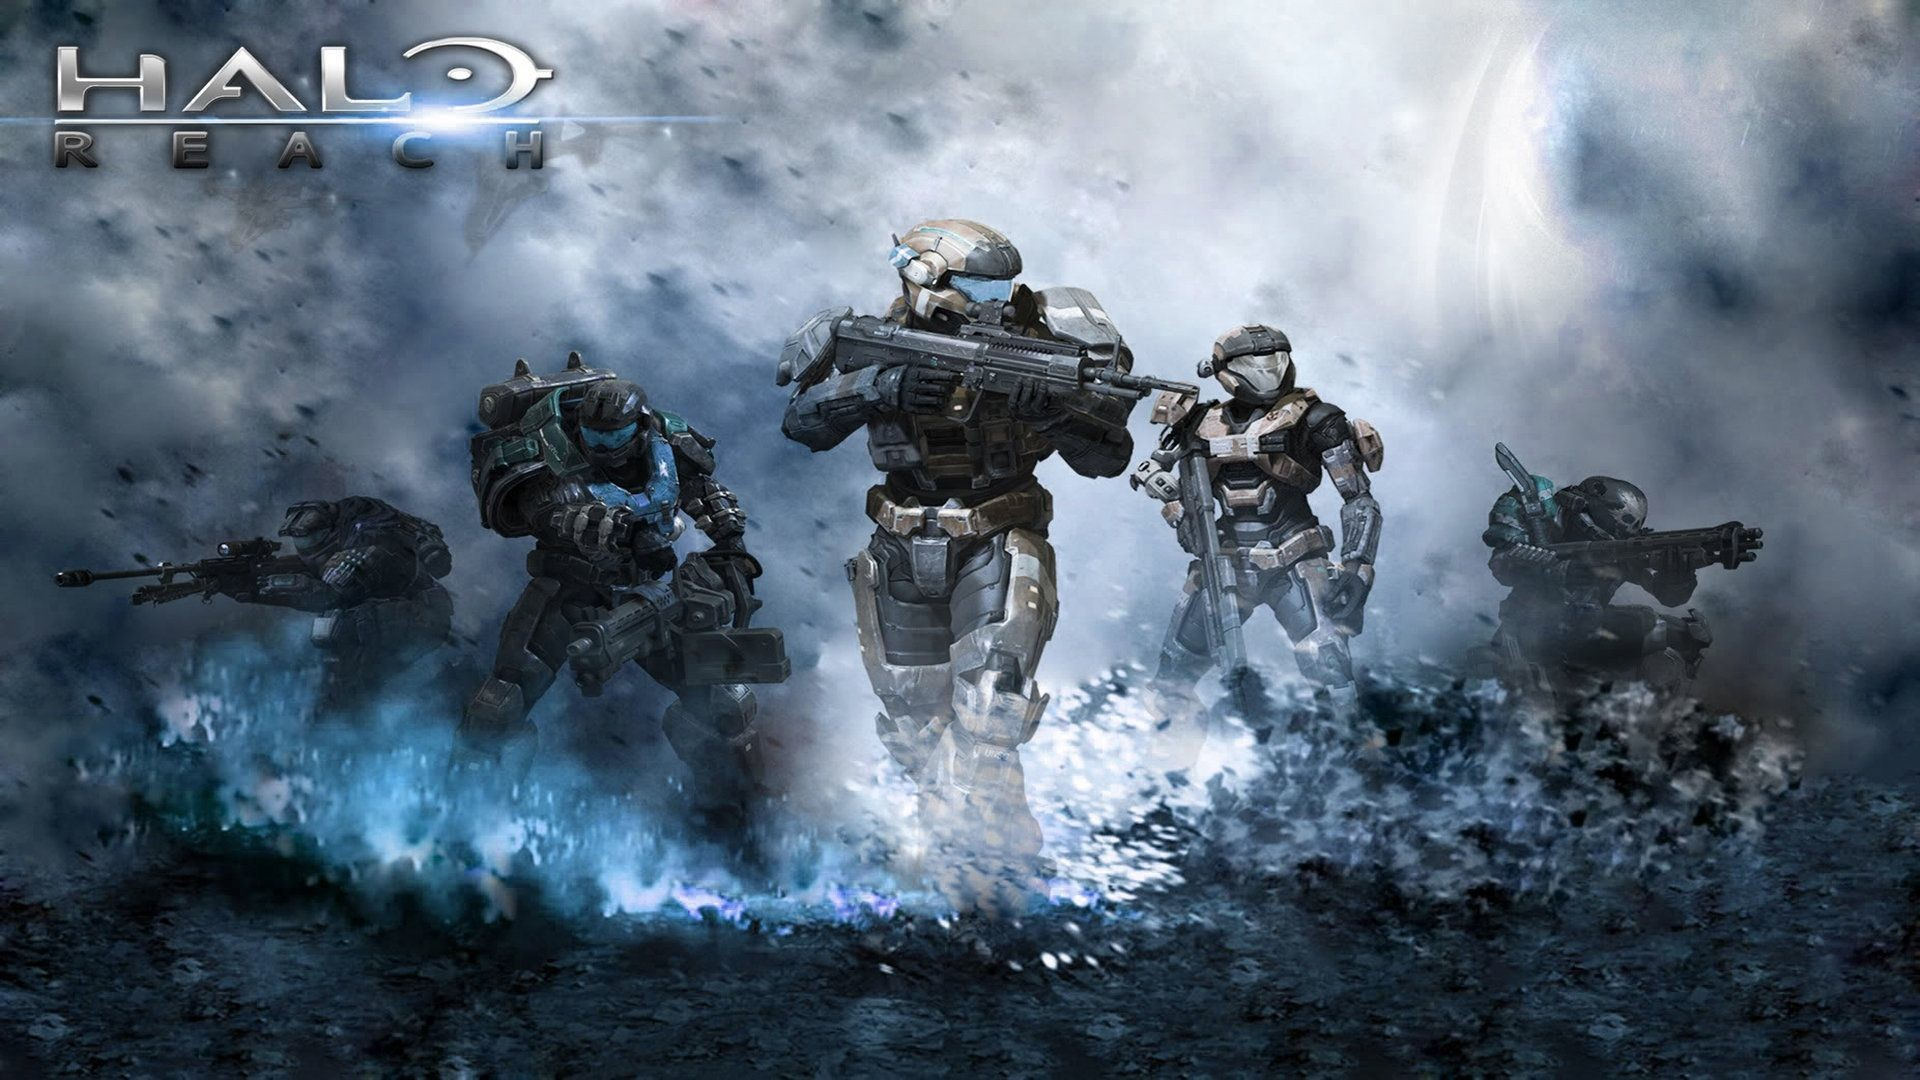 Halo Wallpapers HD 1080p 1